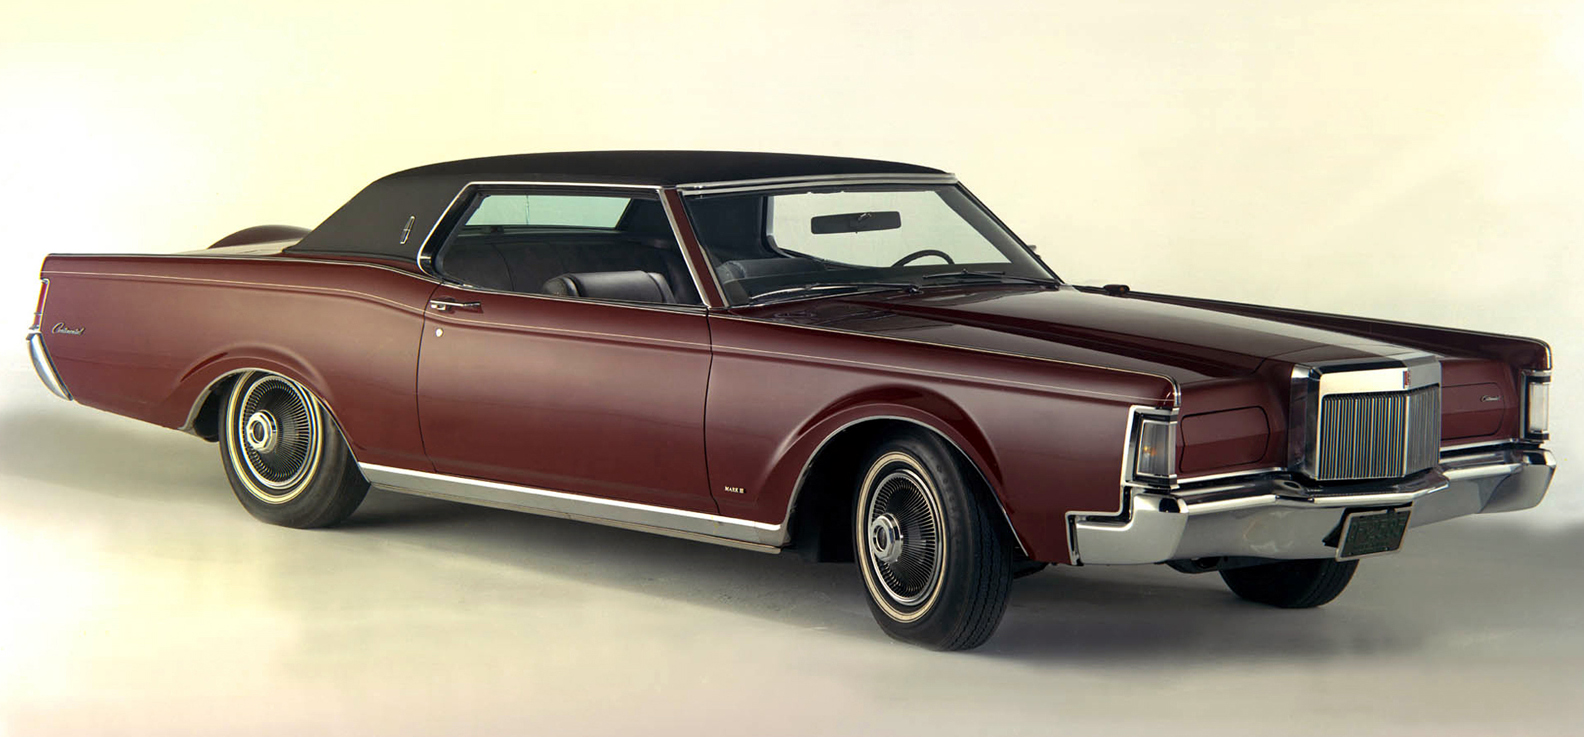 1973 Lincoln Continental Mark III